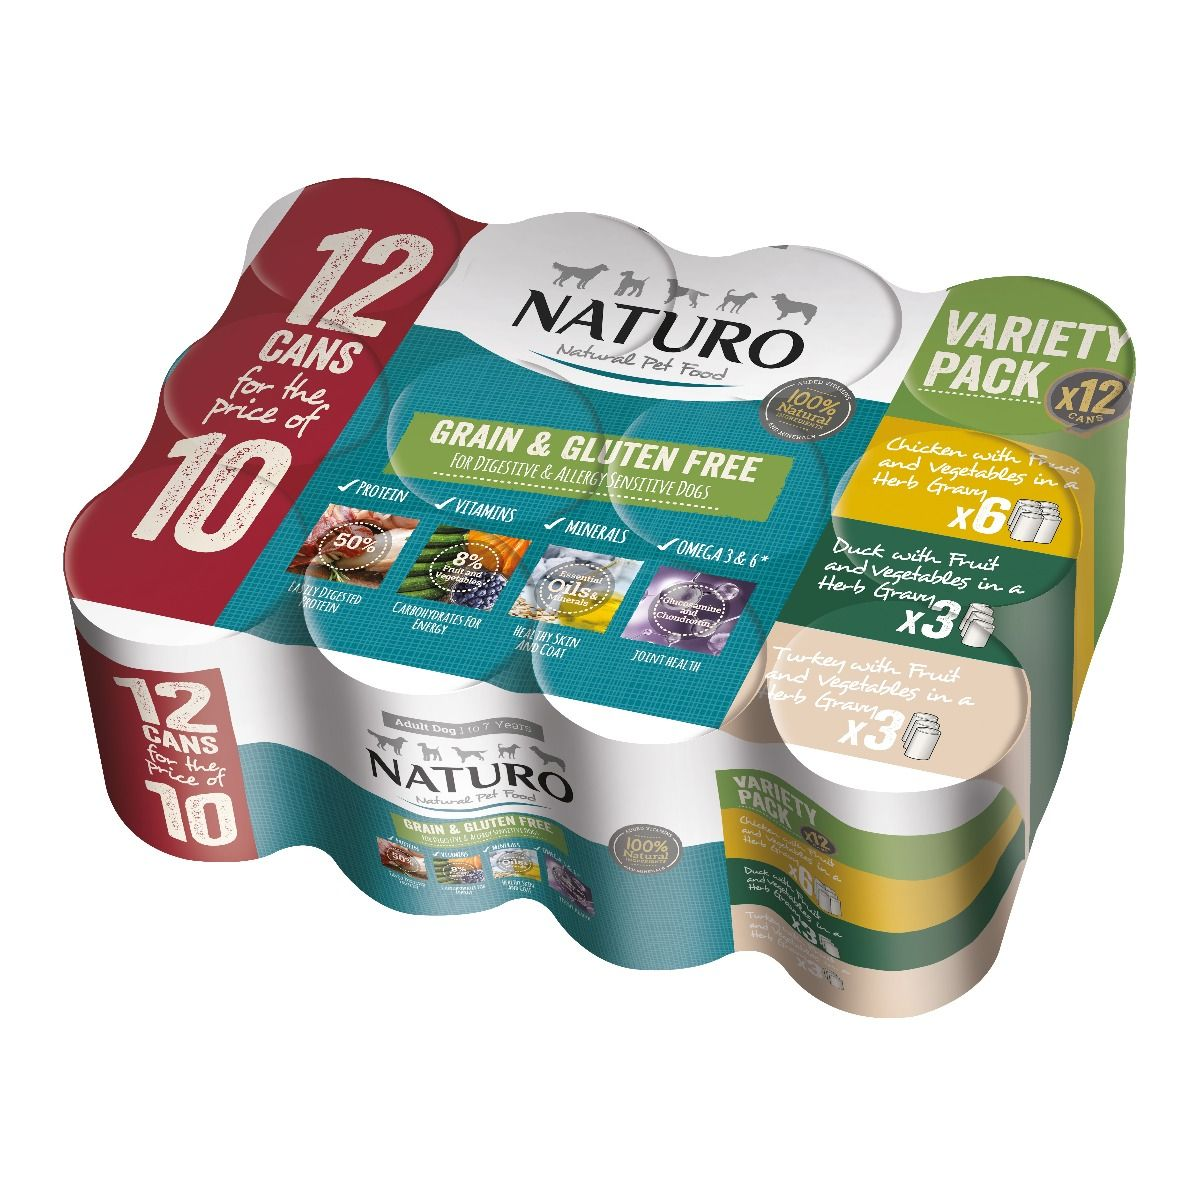 Naturo Adult Grain & Gluten Free Poultry Variety Pack, 390g, case of 12